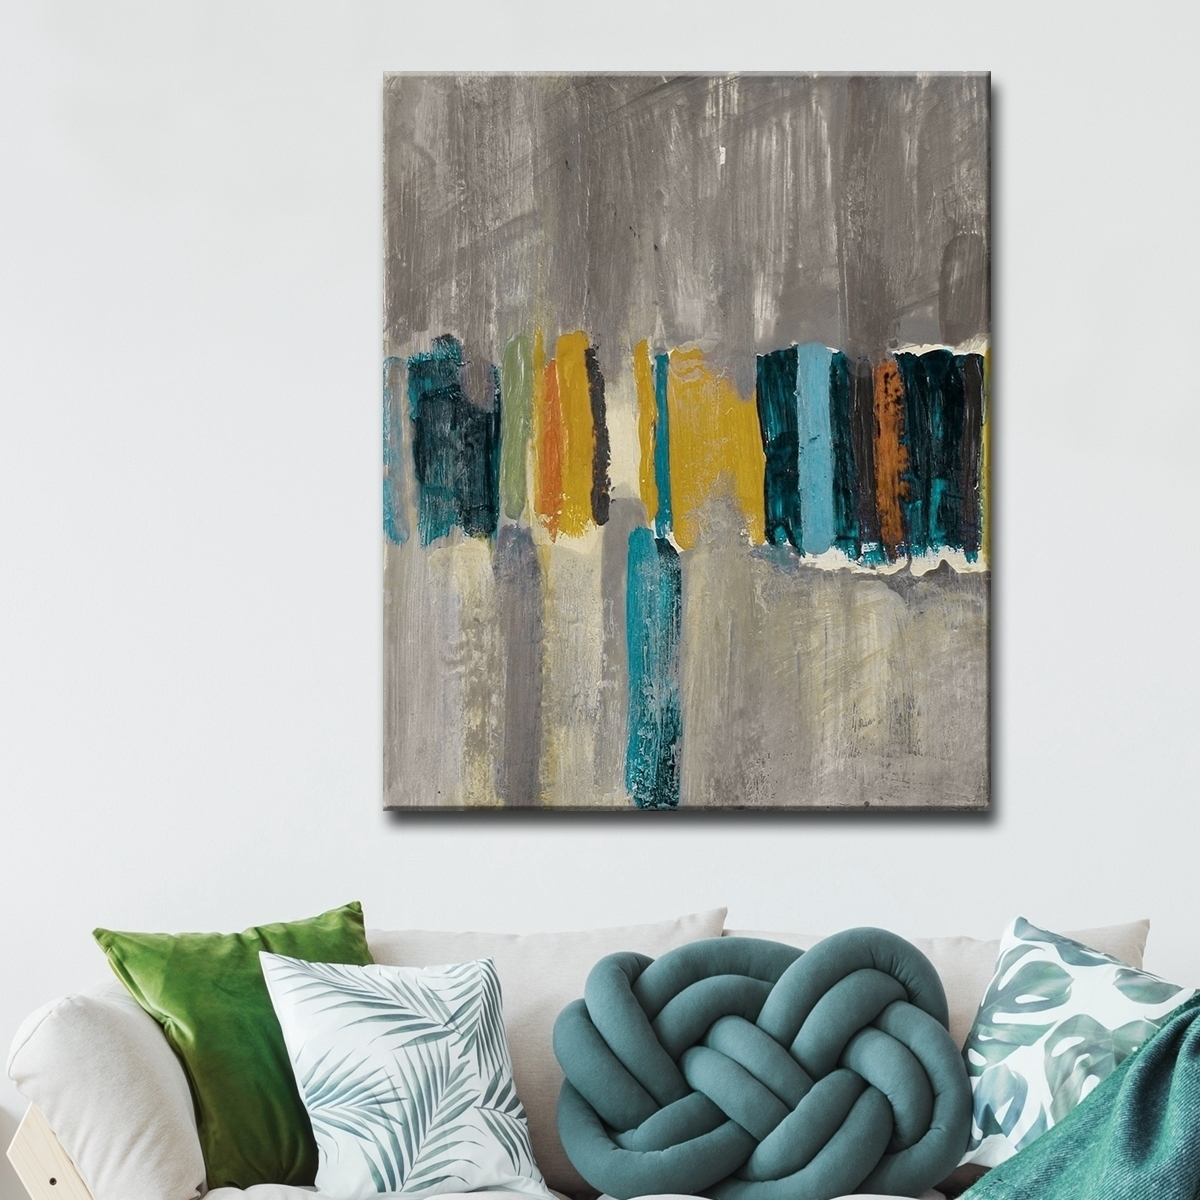 Shop Ready2Hangart 'smash Vii' Oversized Canvas Wall Art – Grey With Regard To Most Recently Released Oversized Teal Canvas Wall Art (Gallery 15 of 20)